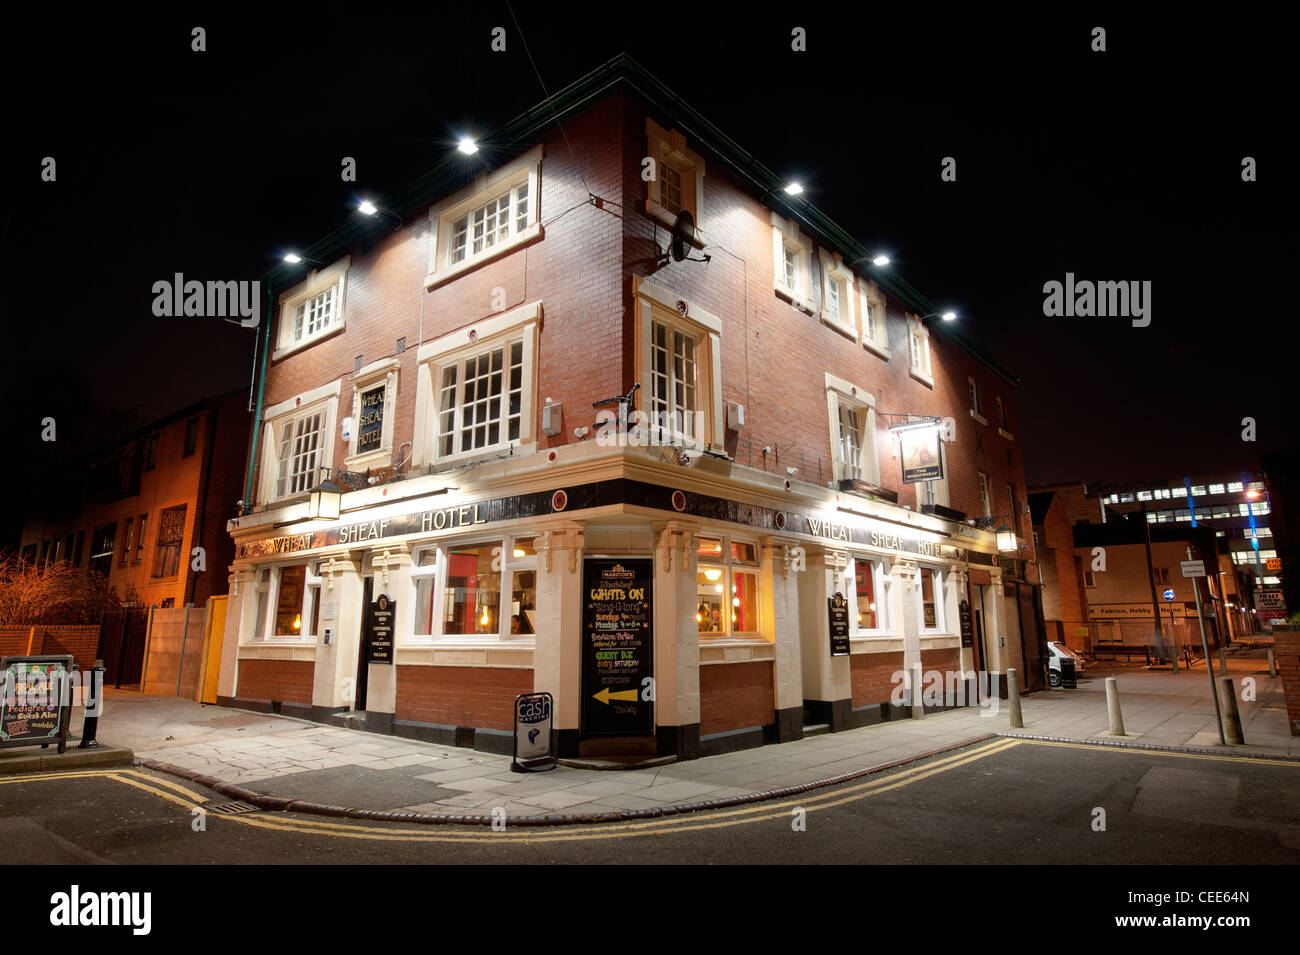 The Wheatsheaf pub located in the Northern Quarter of Manchester, taken at night. - Stock Image